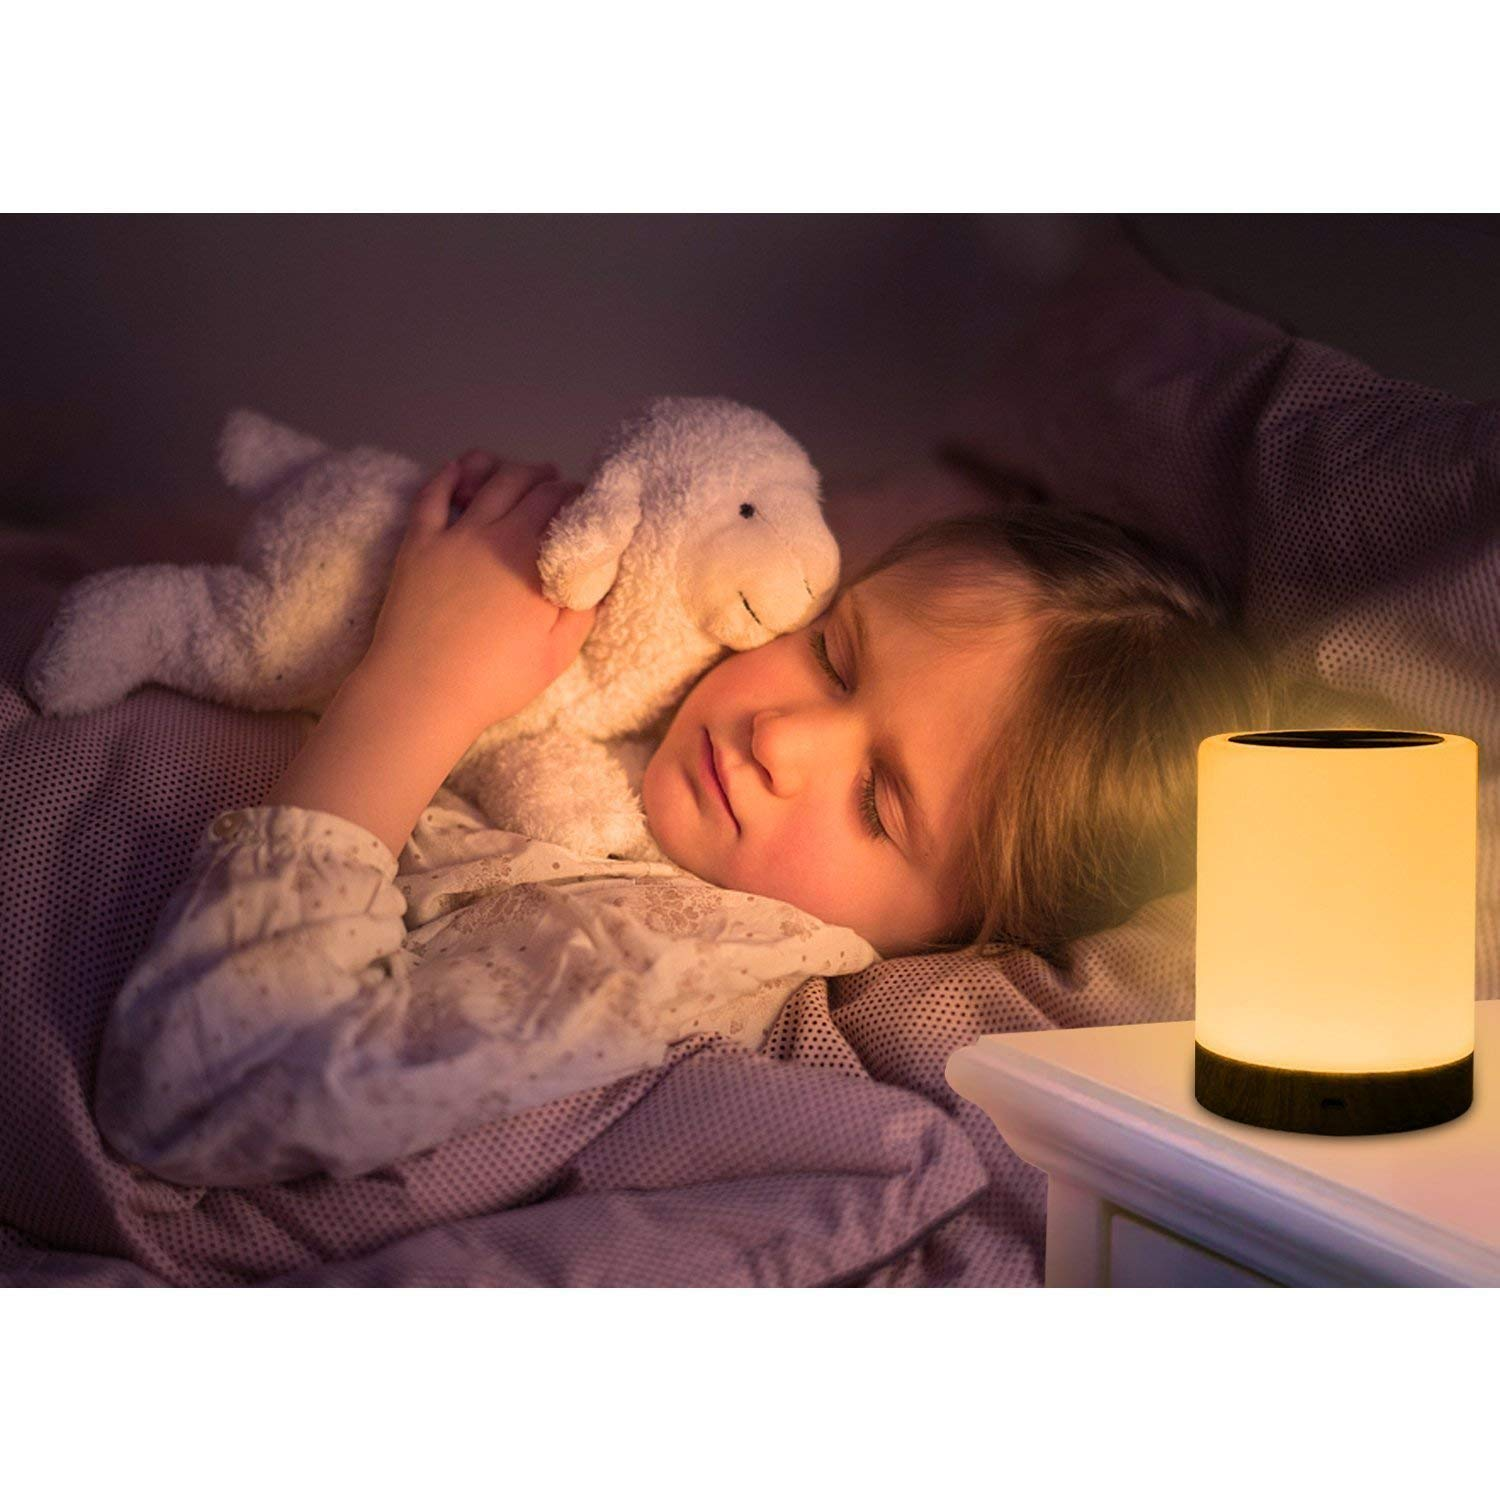 ROYFACC Night Light Touch Sensor Lamp Bedside Table Lamp for Kids Bedroom Rechargeable Dimmable Warm White Light + RGB Color Changing by ROYFACC (Image #4)